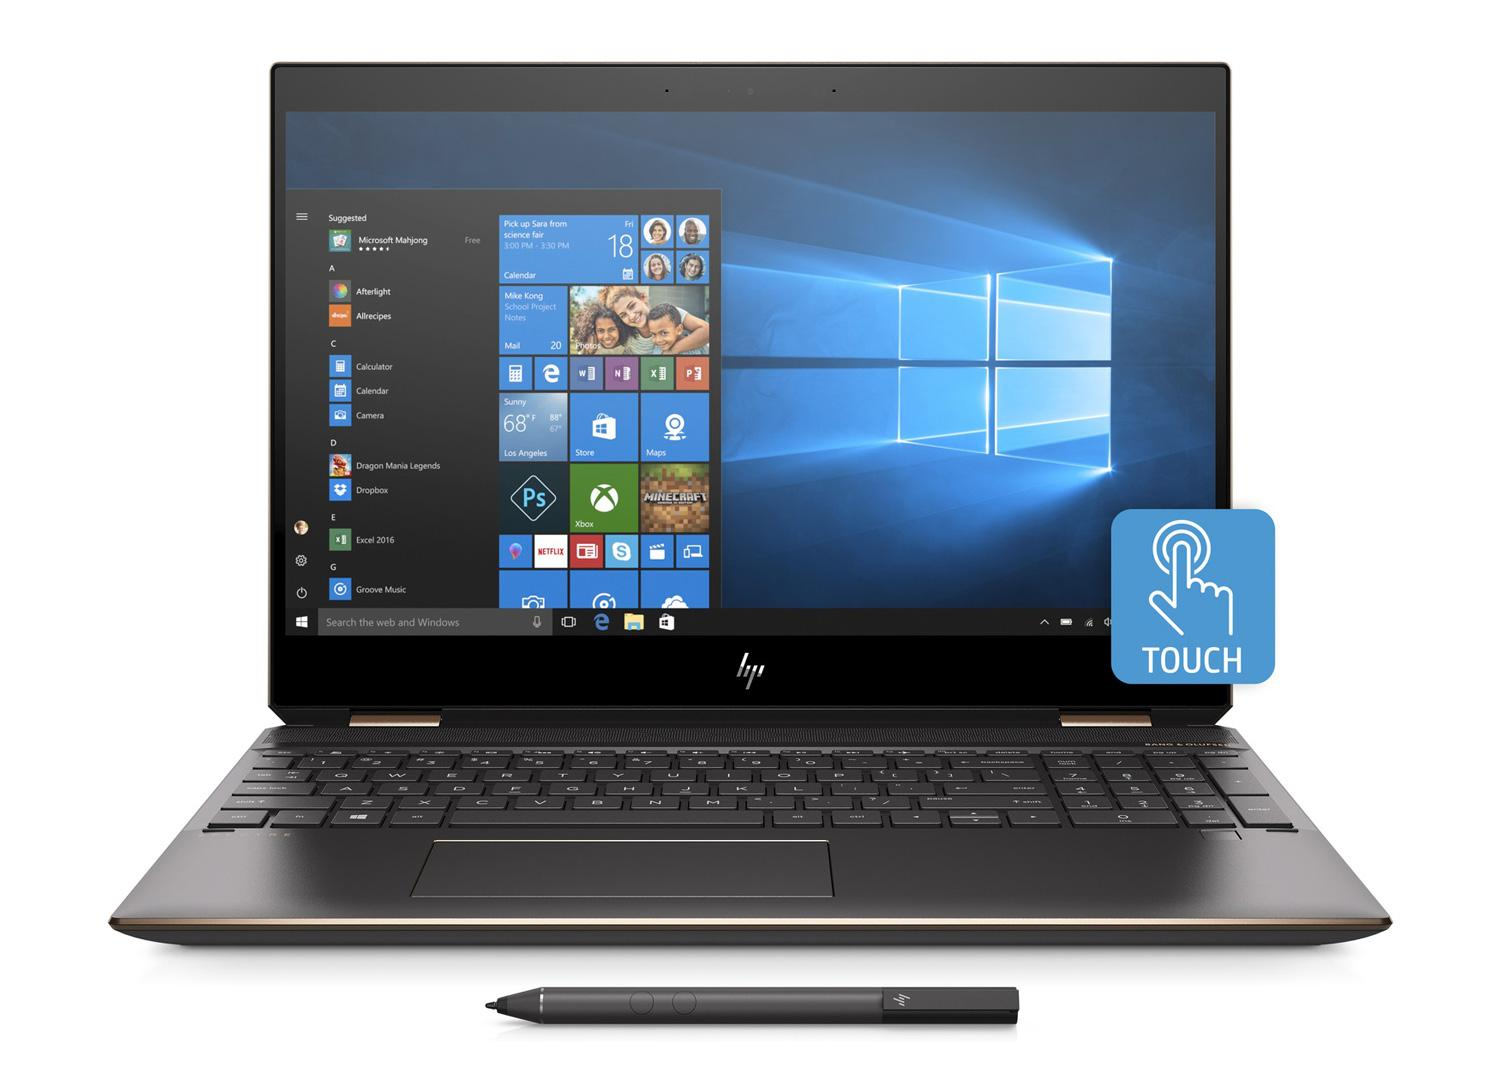 Ordinateur portable HP Spectre x360 15-df0007nf Cendre 4K Tactile - Hexa Core, GTX 1050 Ti - photo 4